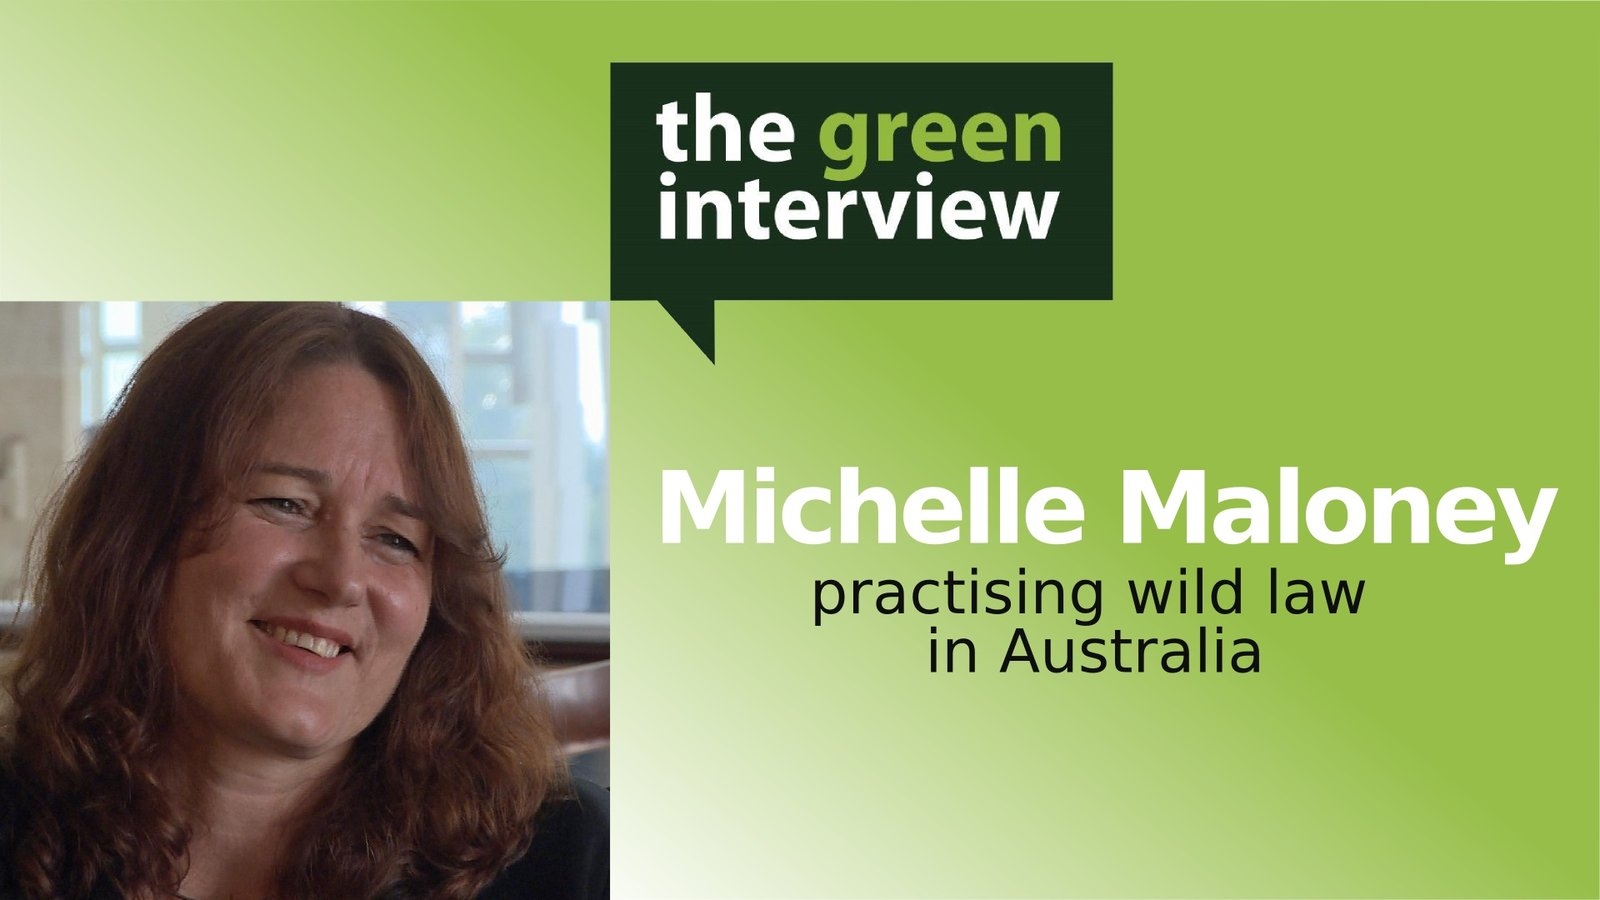 Michelle Maloney: Practising Wild Law in Australia